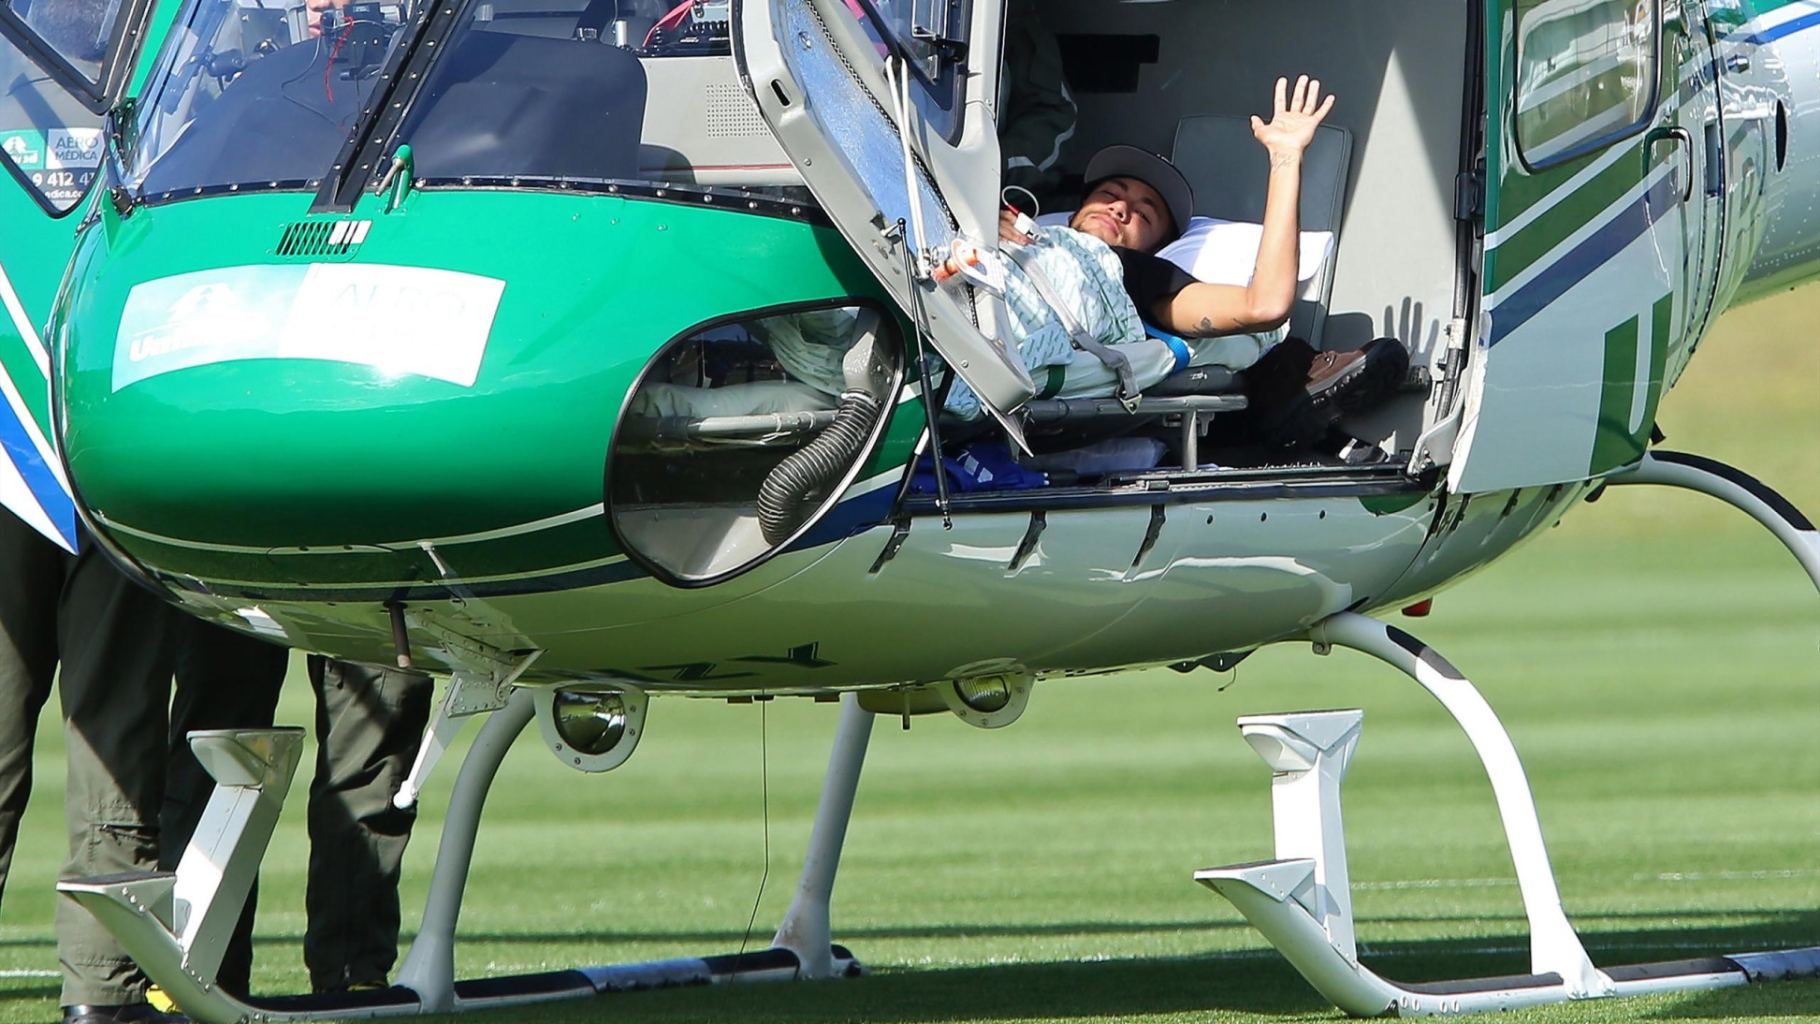 Neymar transported in helicopter while injured